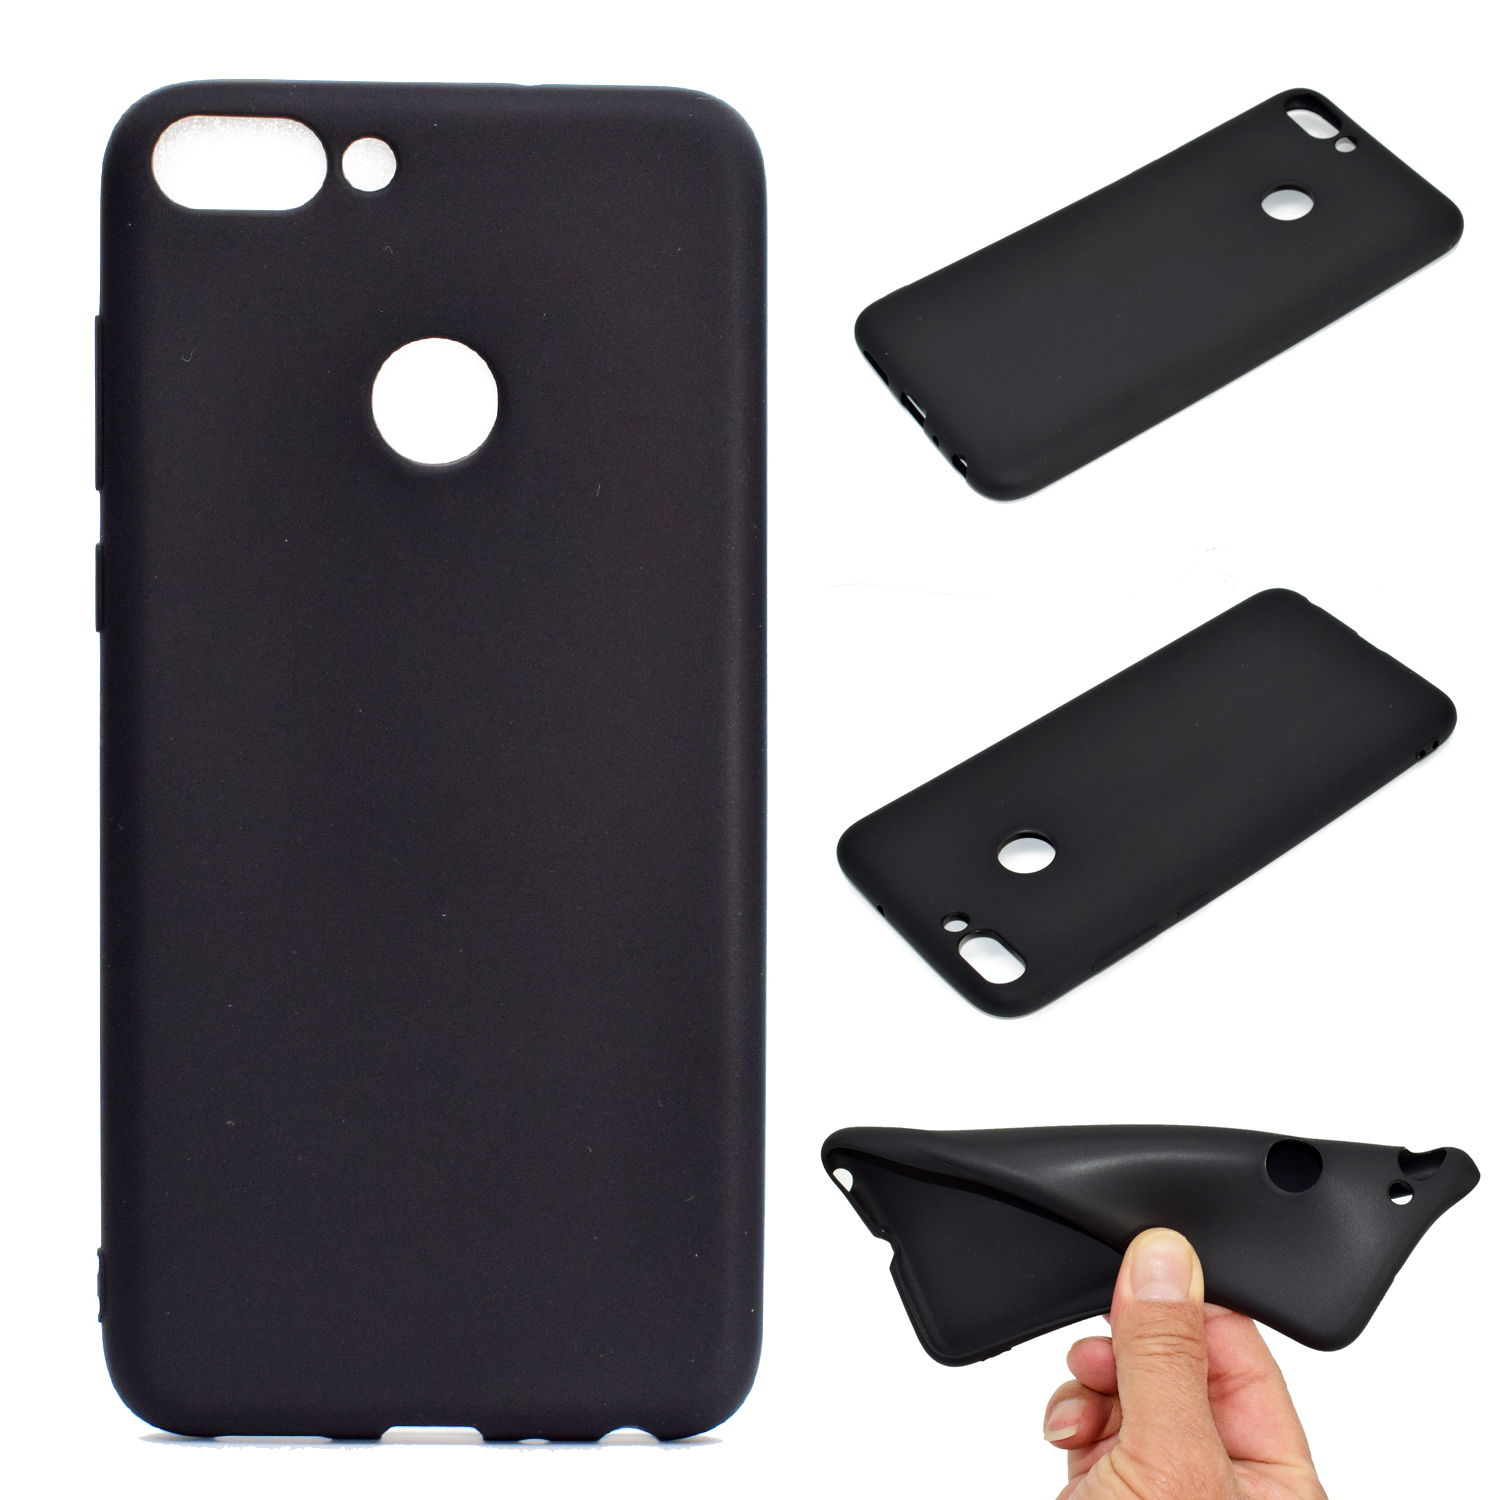 for HUAWEI Honor 9 lite Cute Candy Color Matte TPU Anti-scratch Non-slip Protective Cover Back Case black